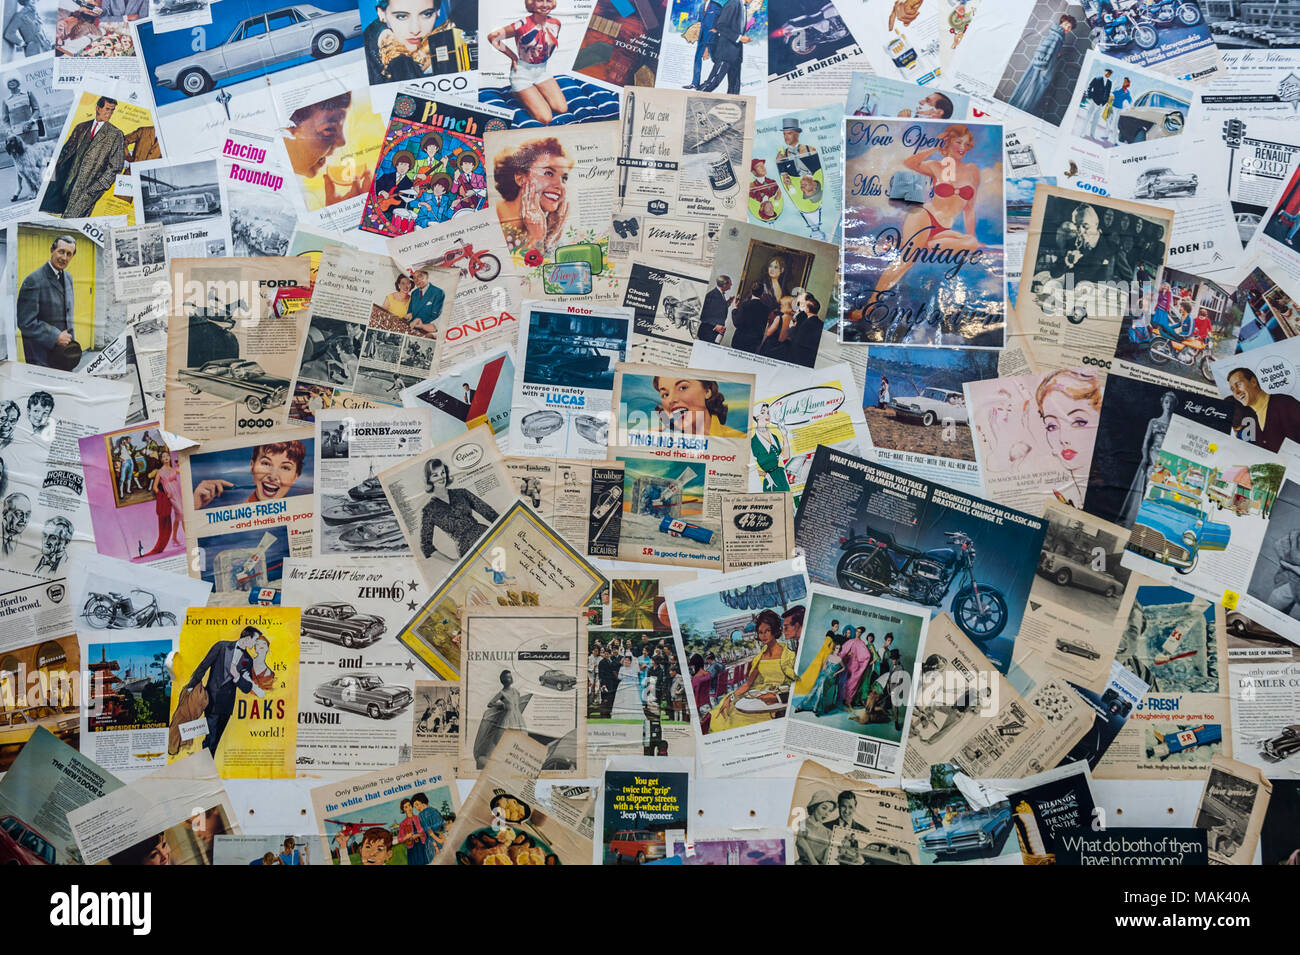 various-vintage-magazine-adverts-on-a-wall-in-coventry-market-coventry-west-midlands-uk-MAK40A.jpg